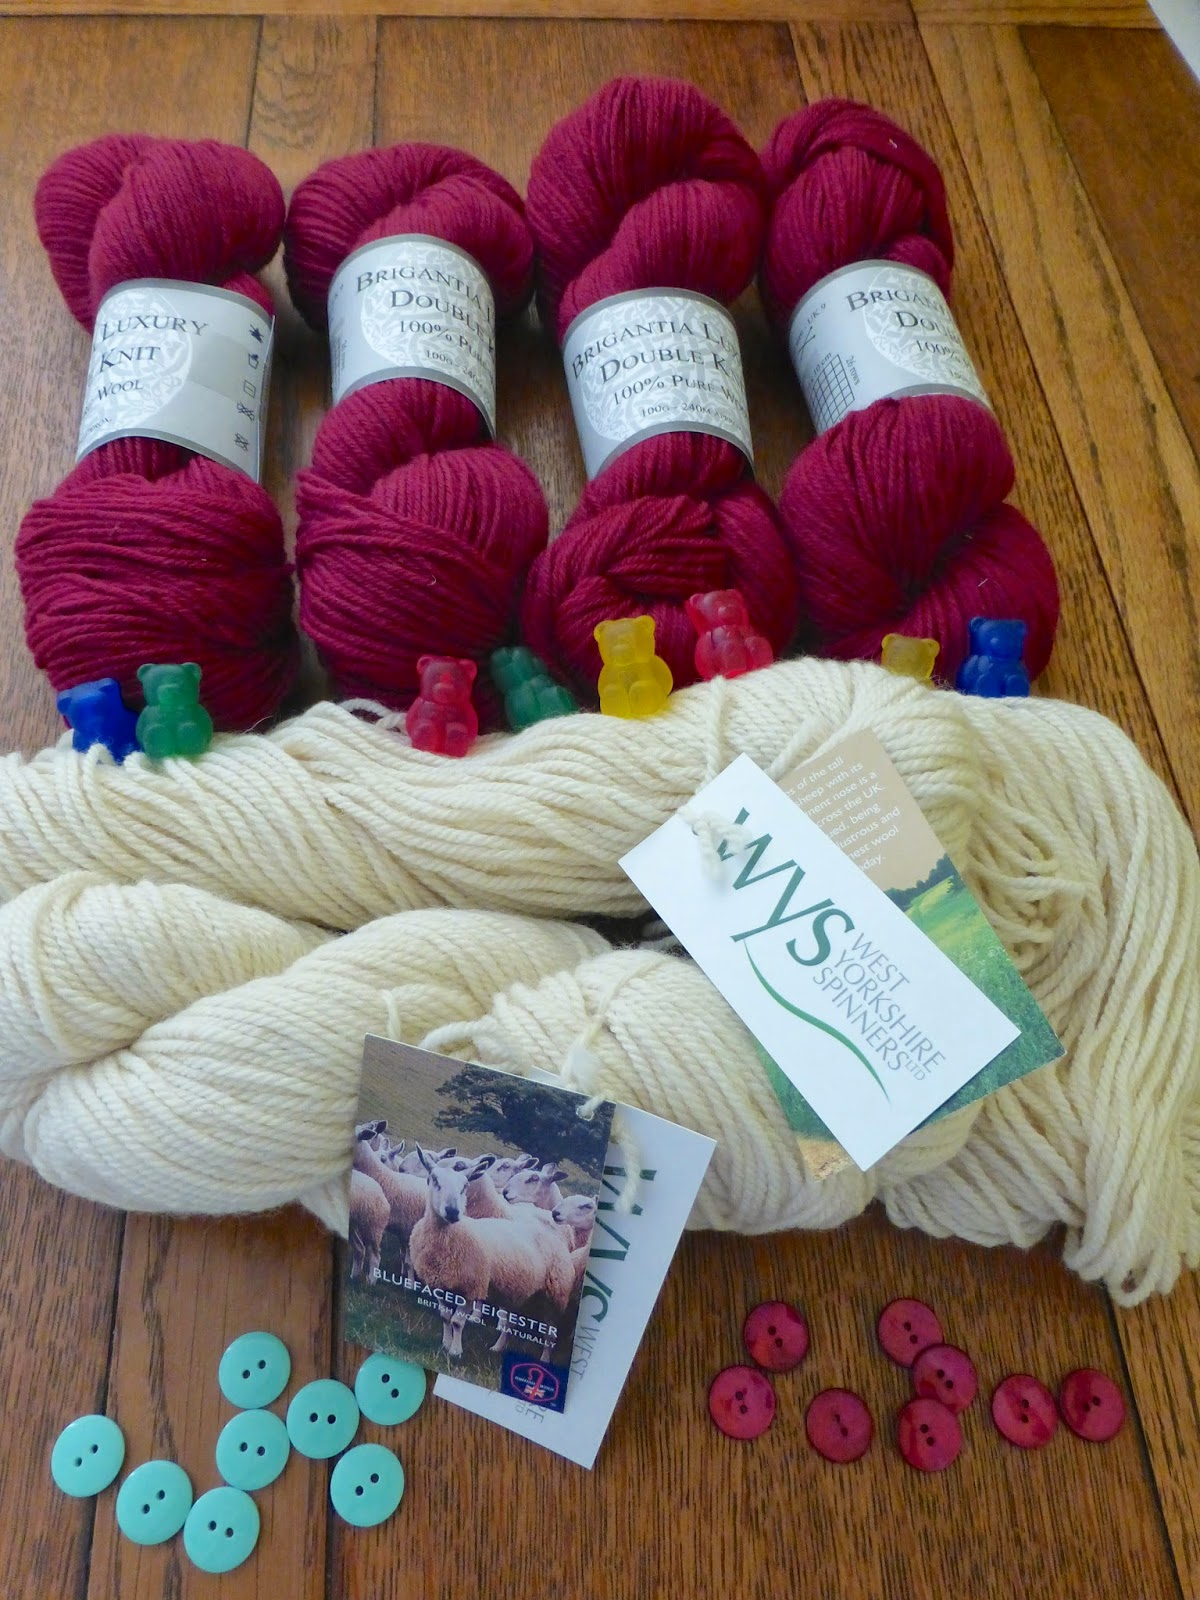 Isla of Axholme knitting blog york purchases from Duttons for buttons and Ram Shambles Brigantia wys bittond mint and red bear needle toppers